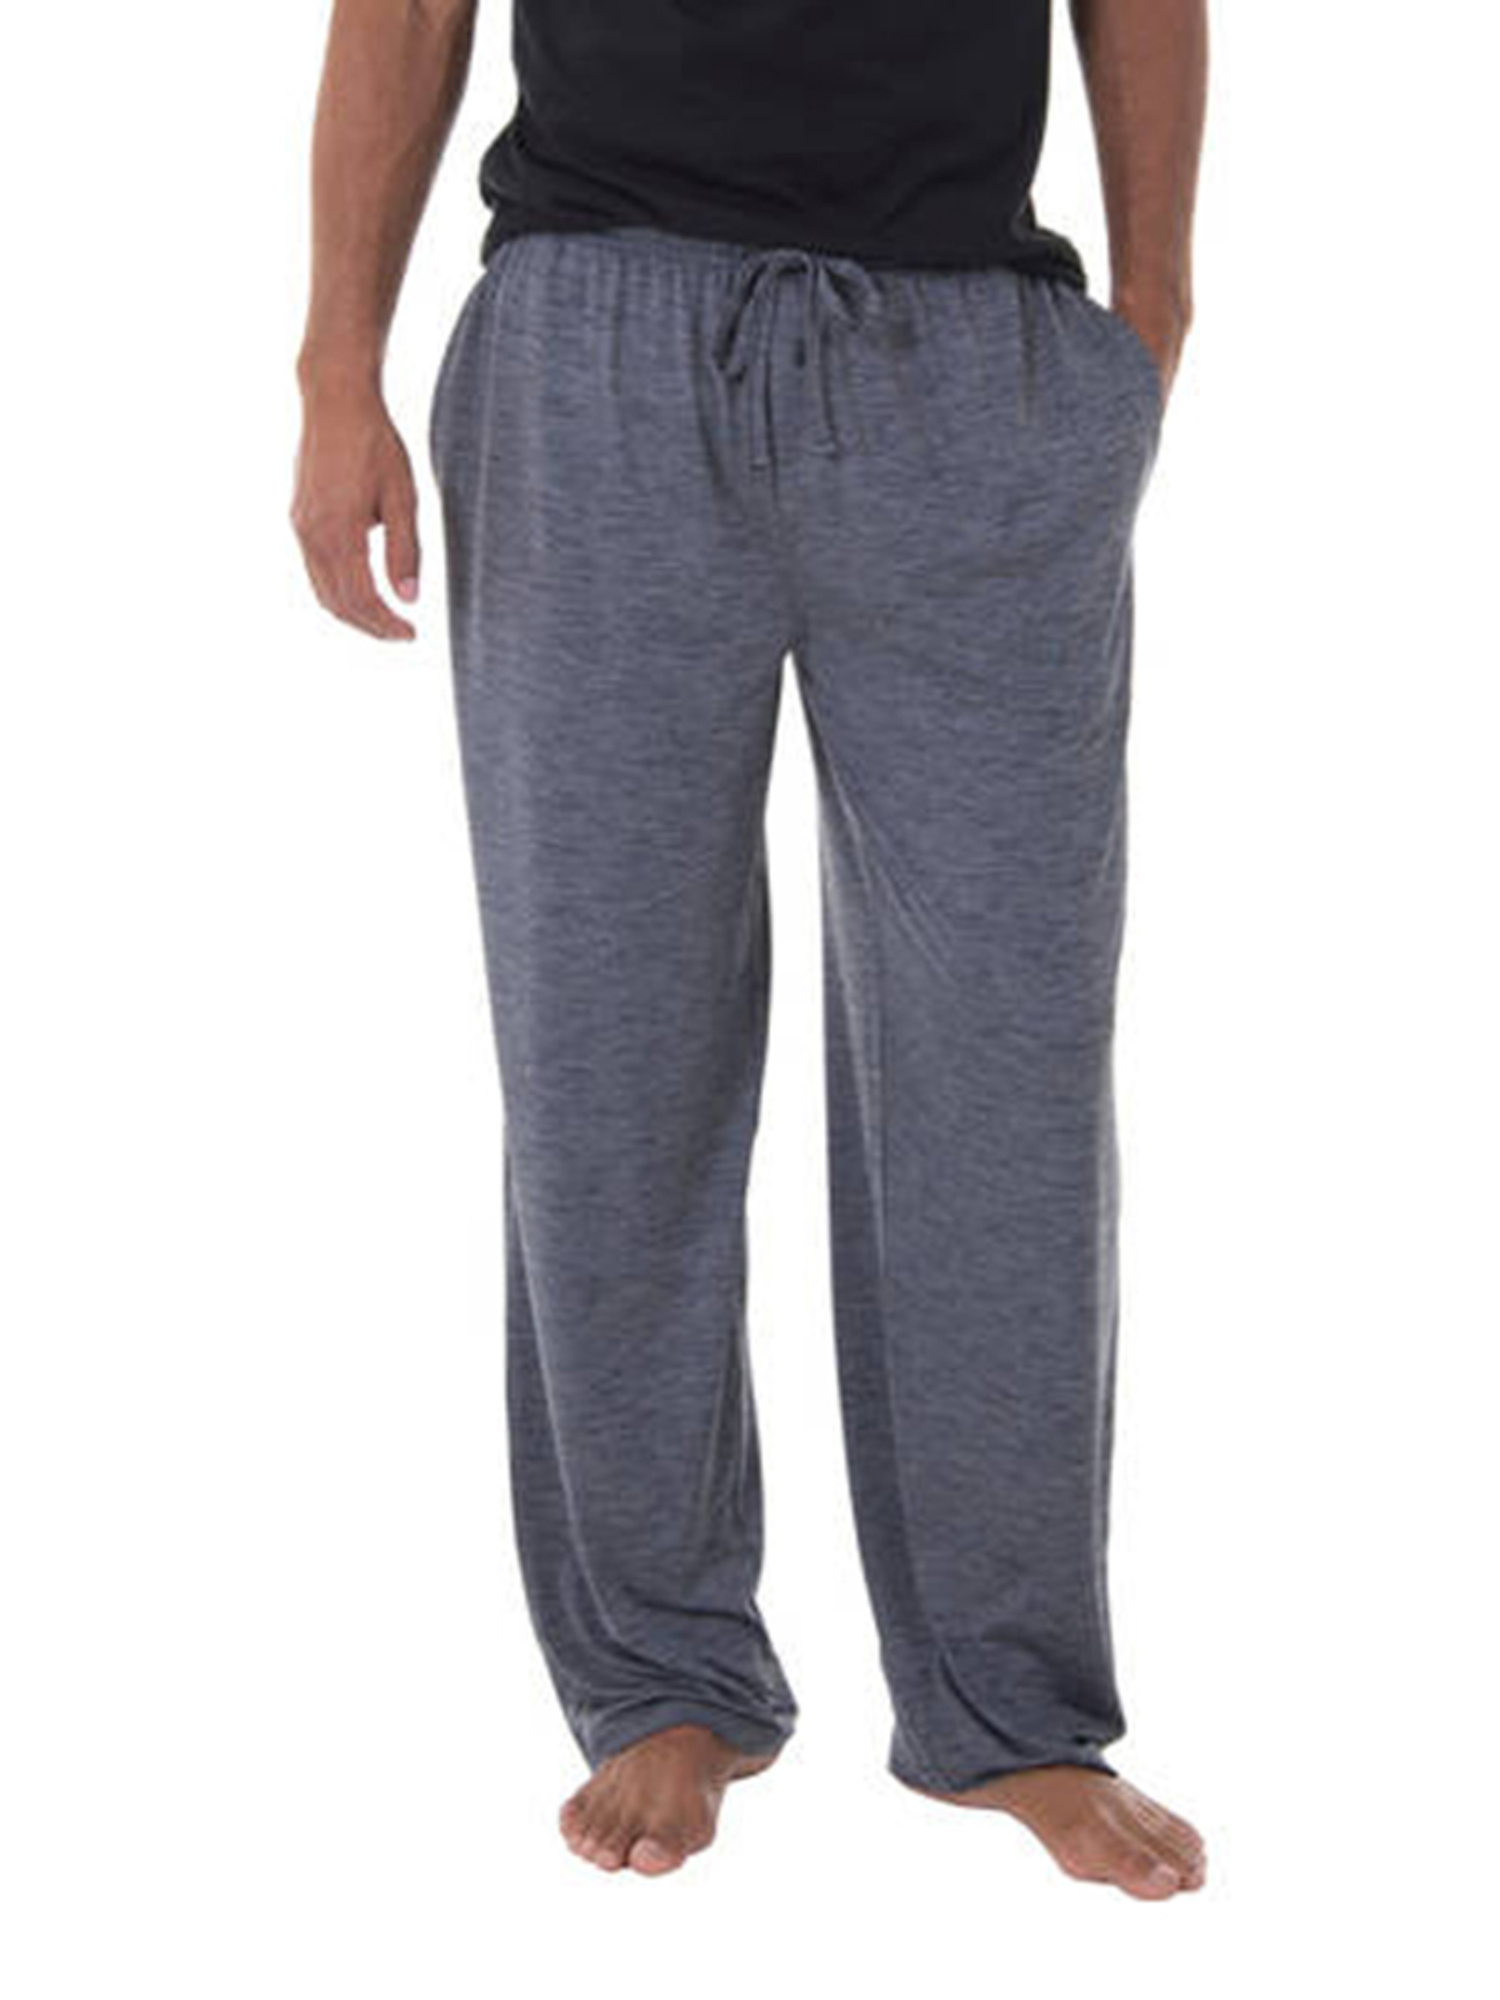 NEW Mens Fruit of the Loom Gray Knit Sleep Lounge Pajama Jogger Pants Size Large